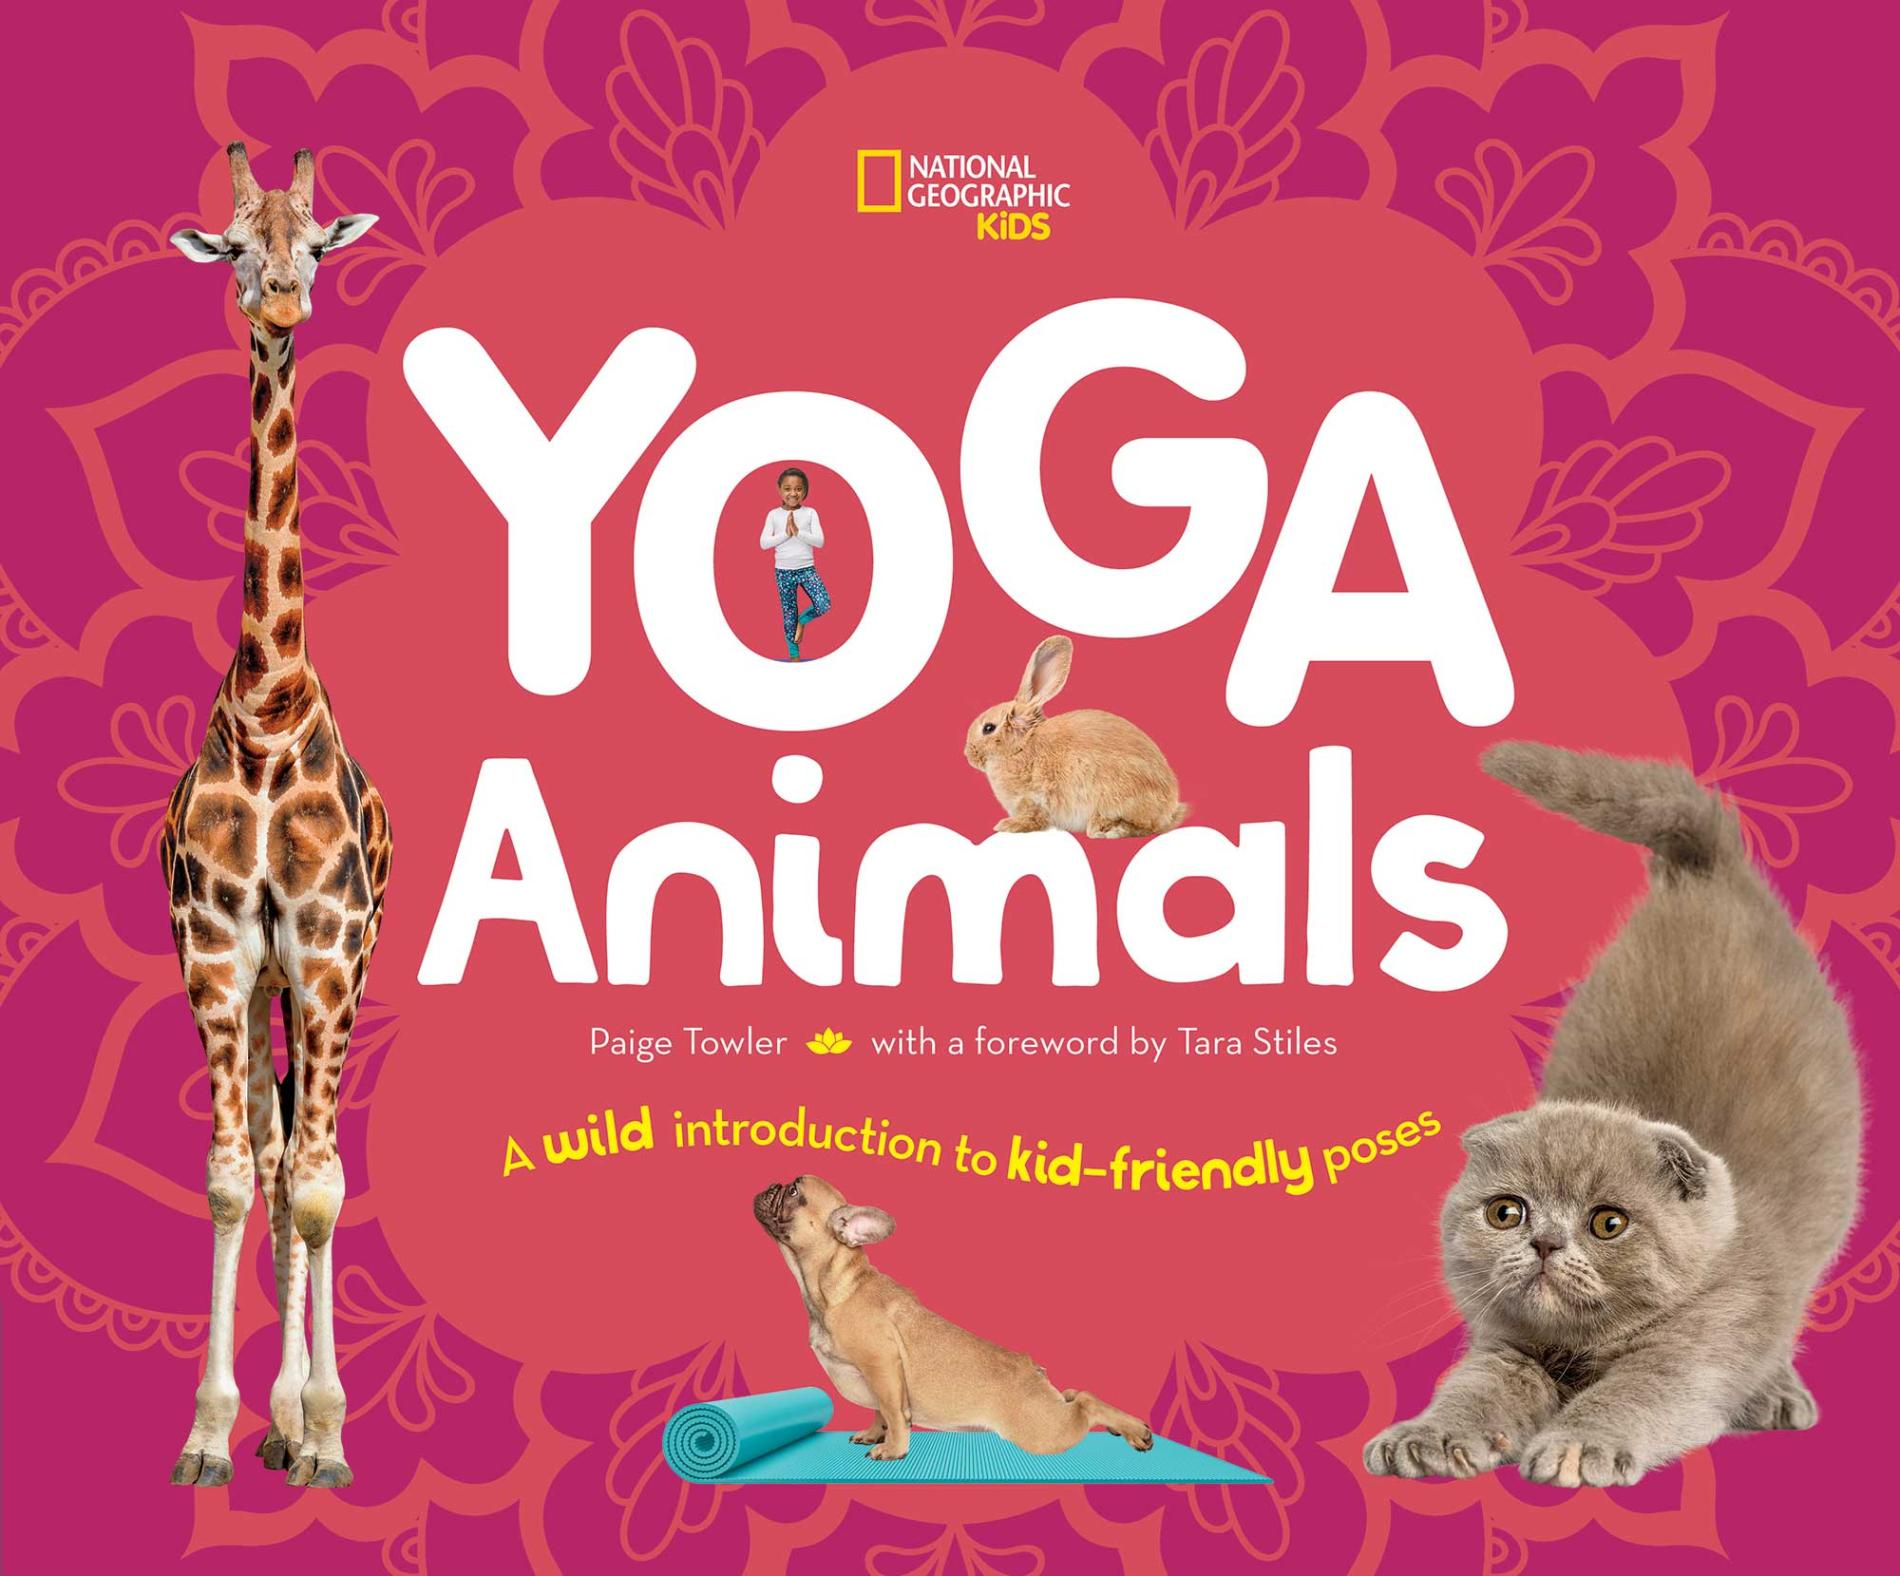 Yoga Animals: A Wild Introduction to Kid-Friendly Poses books for kids